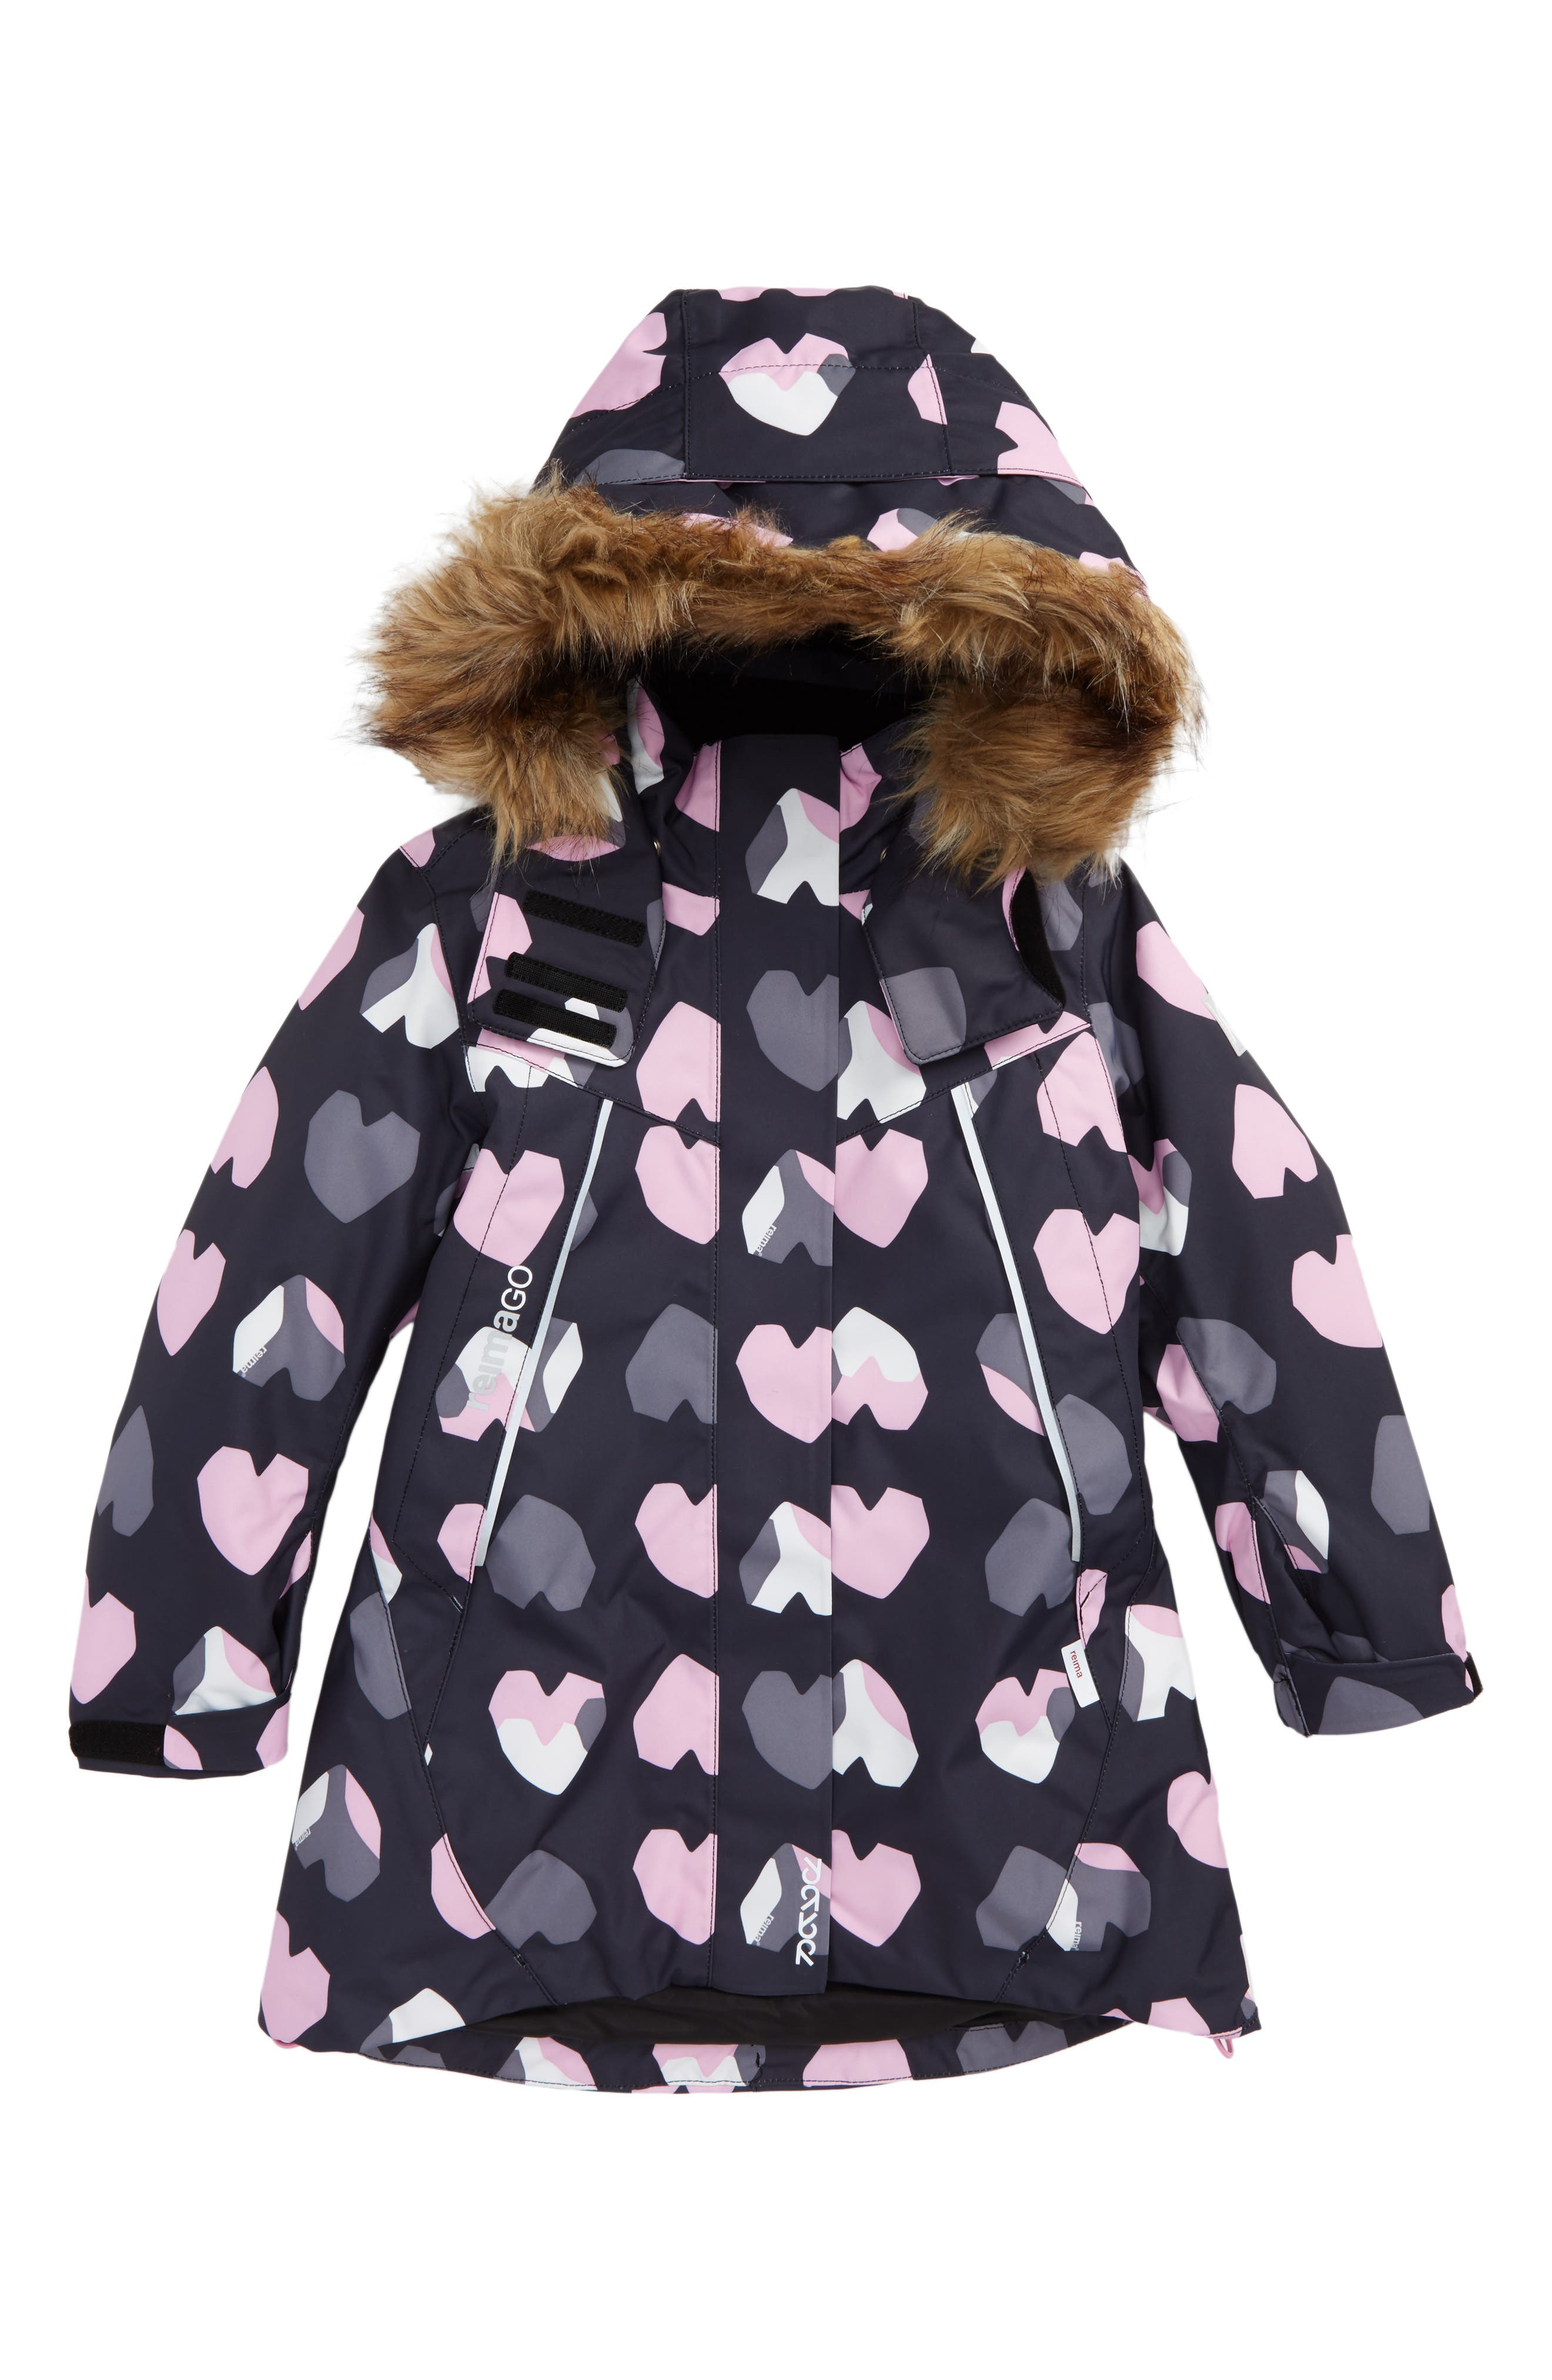 Main Image - Reima Reimatec® Waterproof Hooded A-Line Jacket with Faux Fur Trim (Toddler Girls & Little Girls)